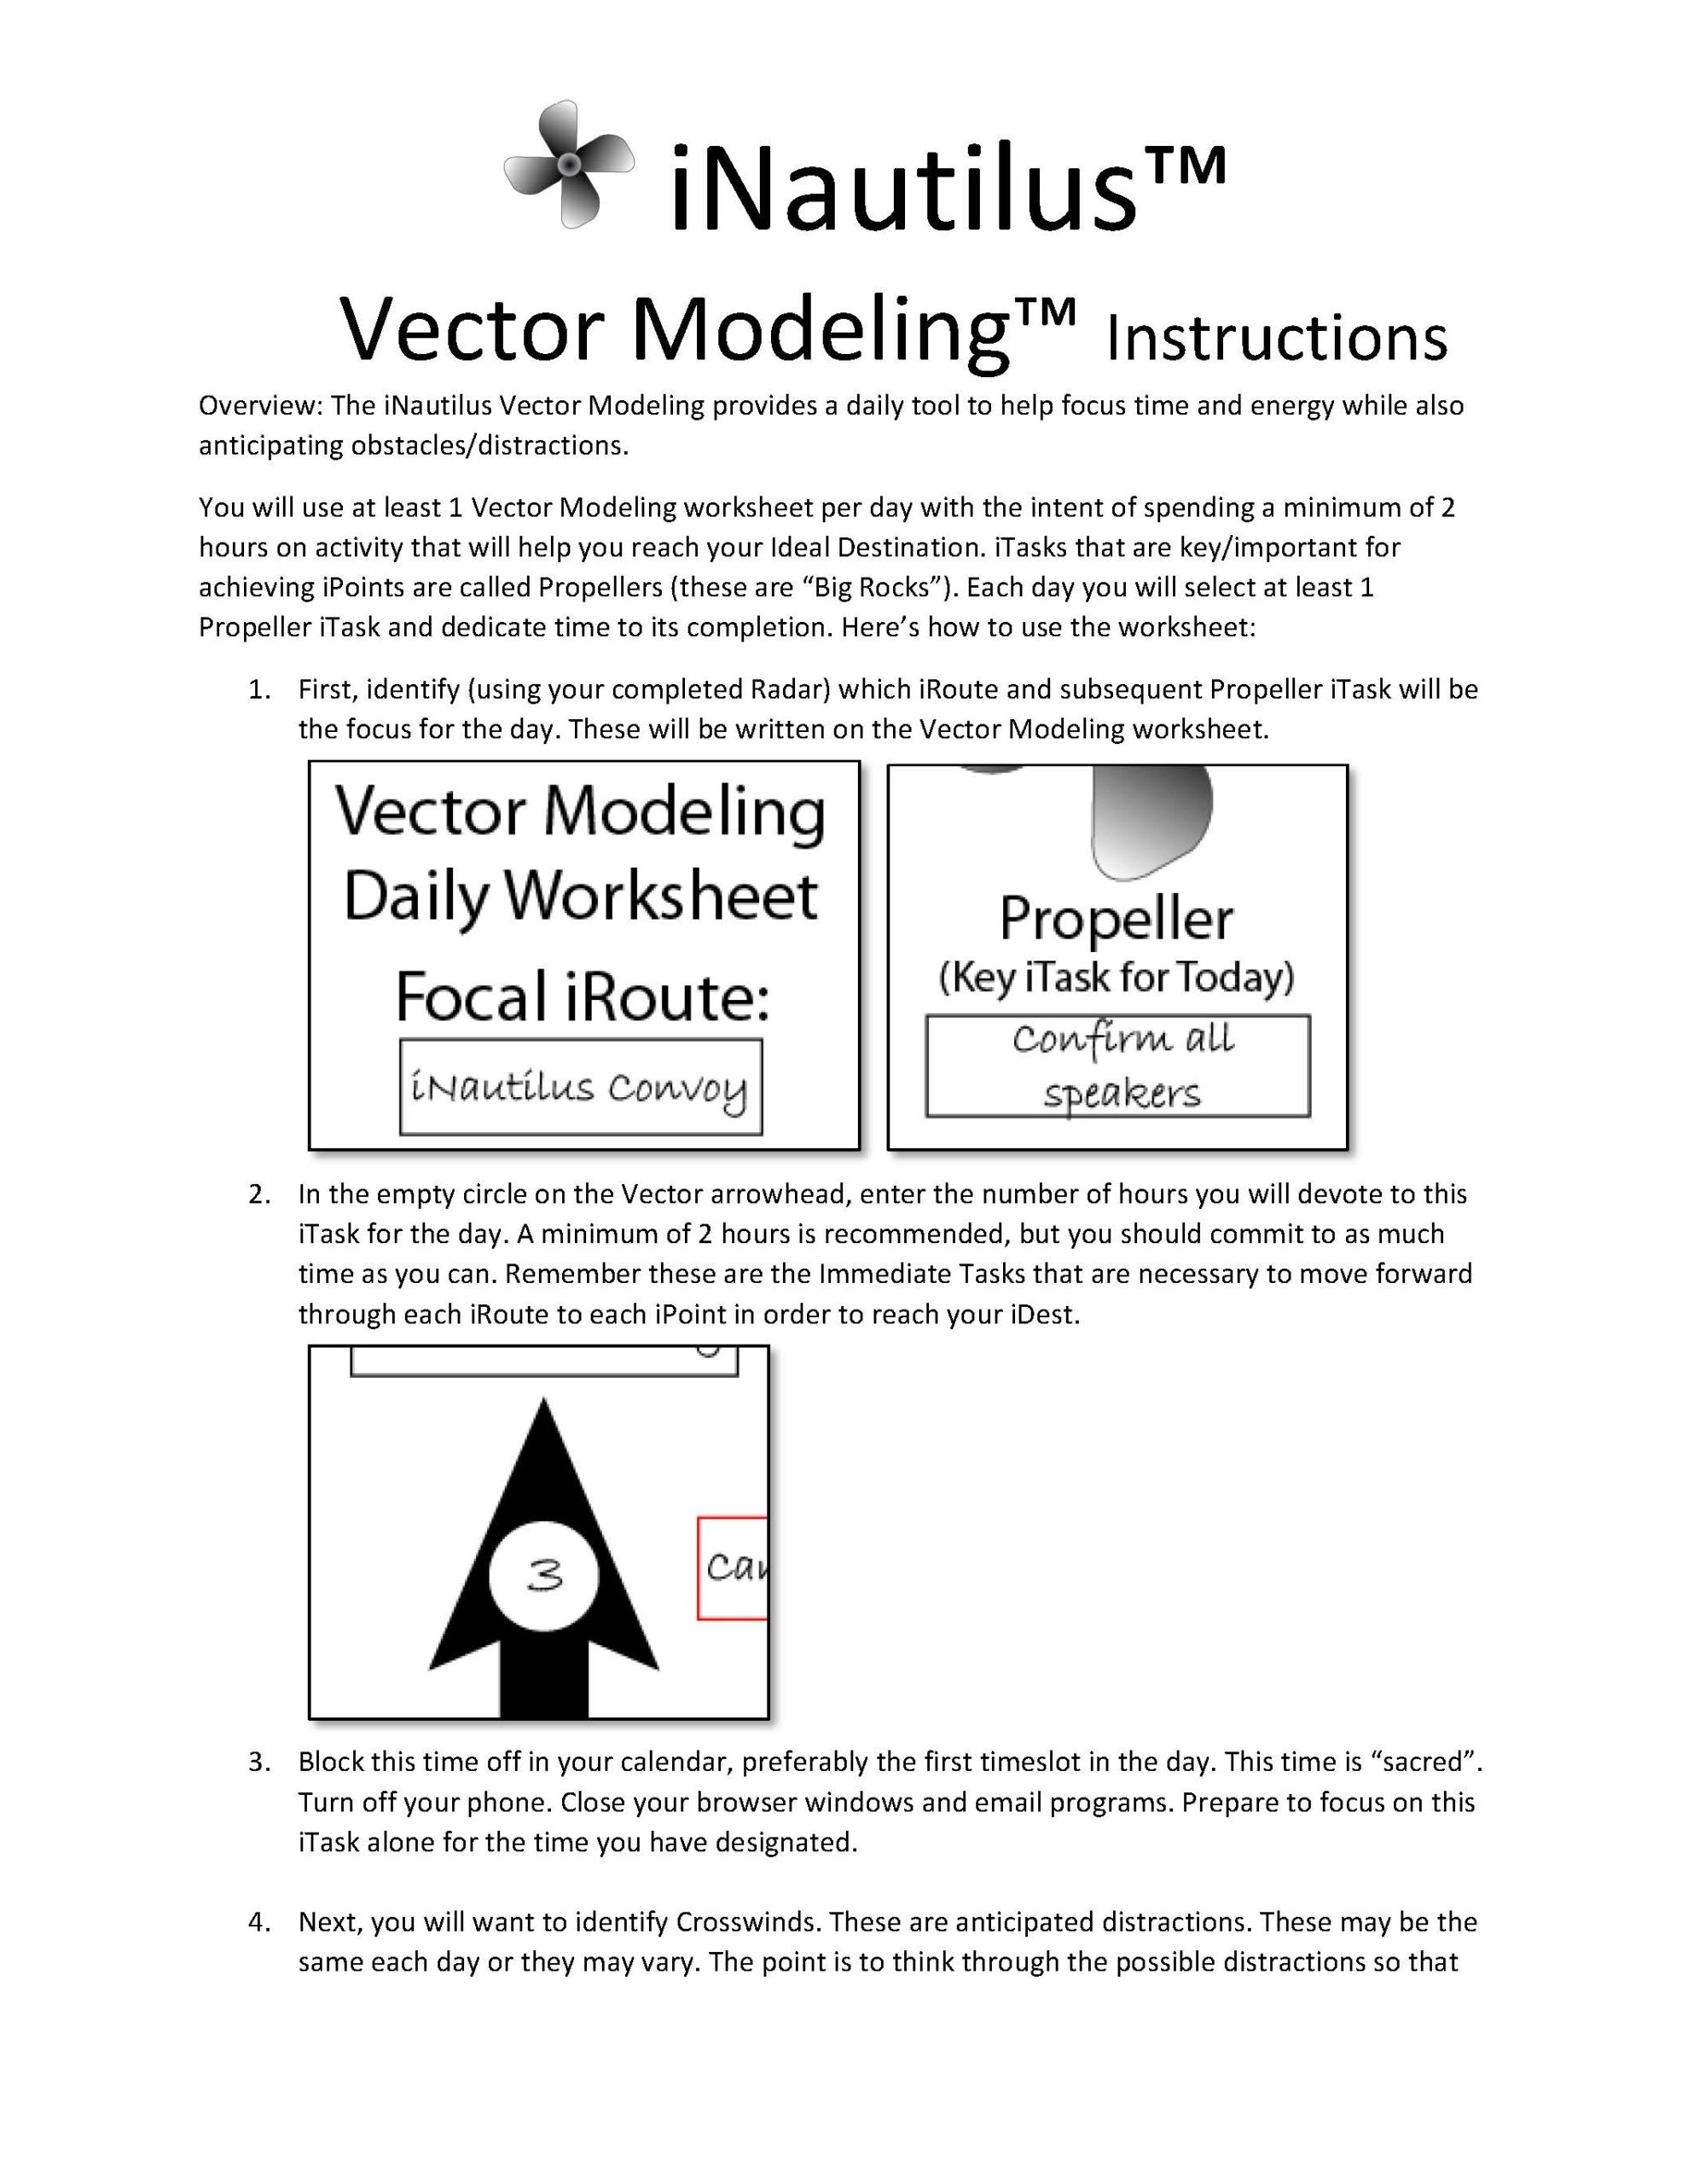 iconVectorModelingInstuctions